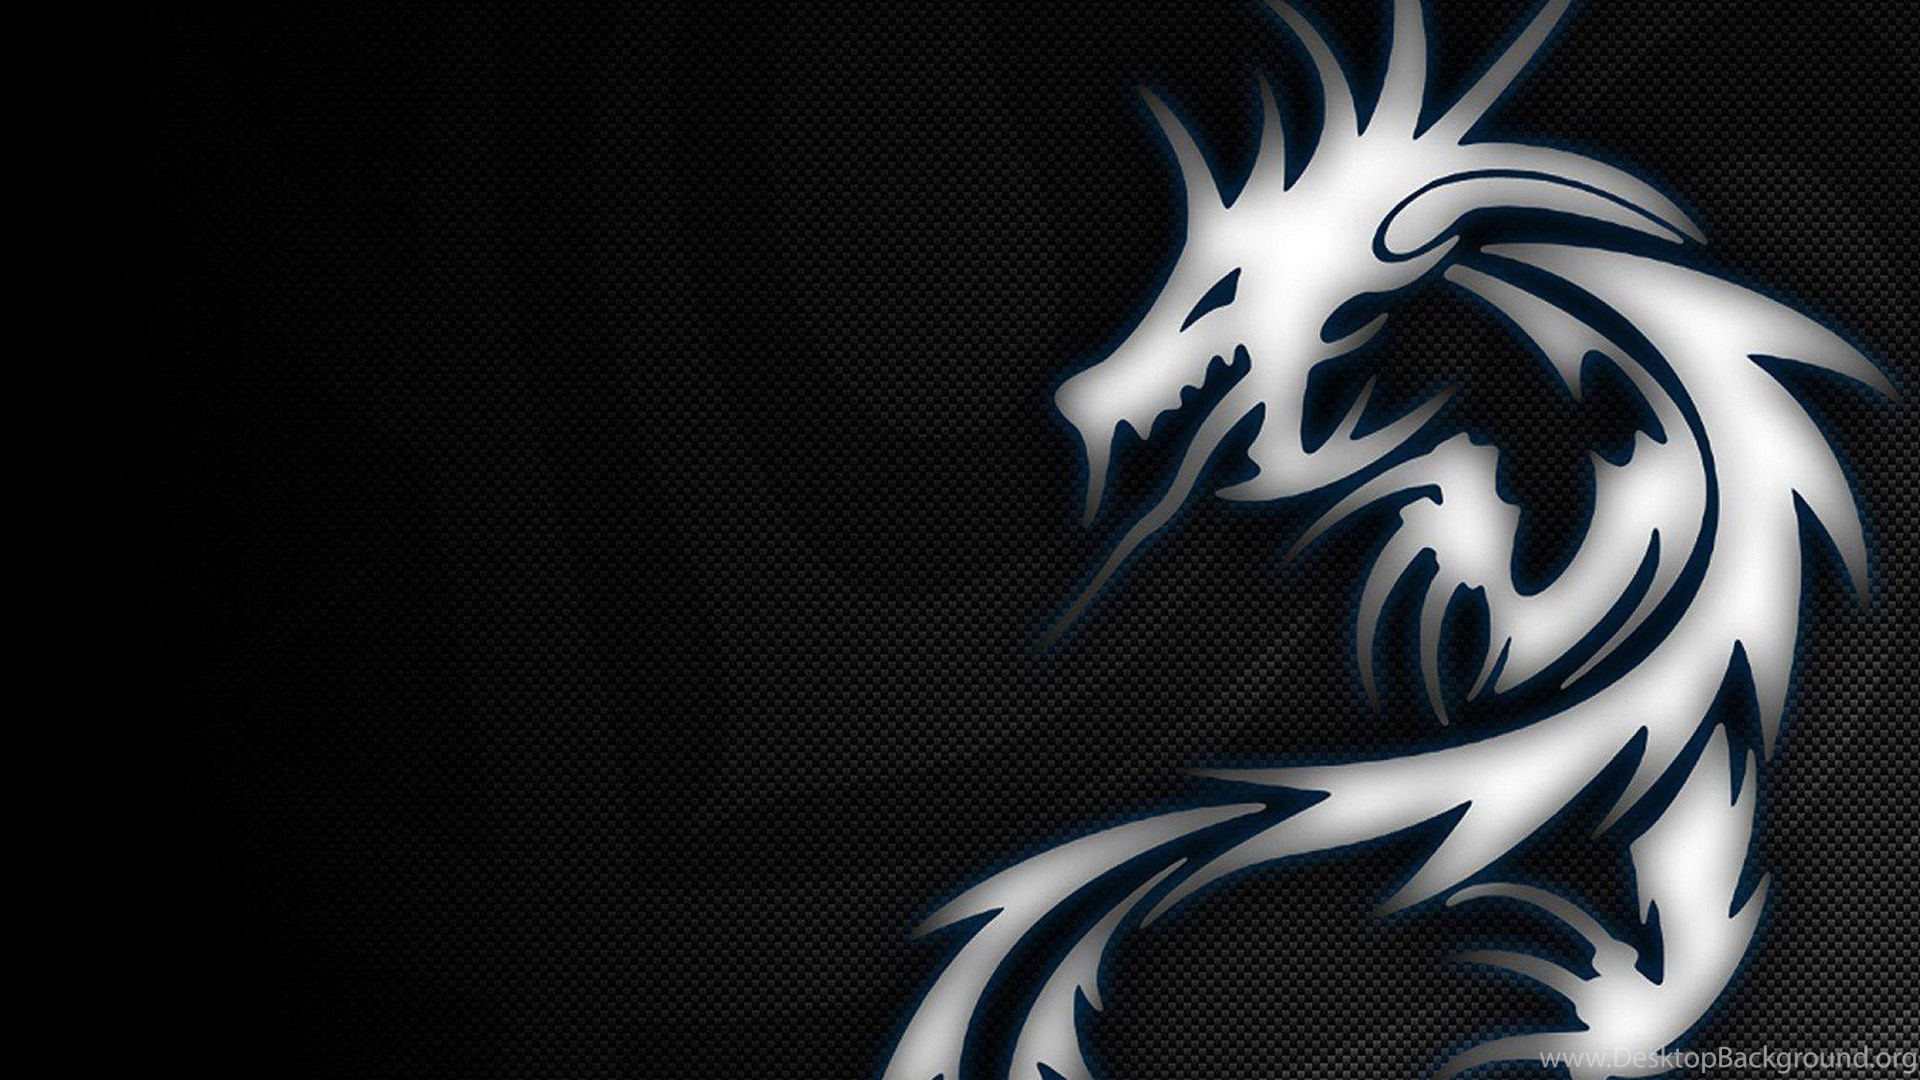 Dragon msi logo wallpaper hd desktop wallpapers desktop - Dragon backgrounds 1920x1080 ...